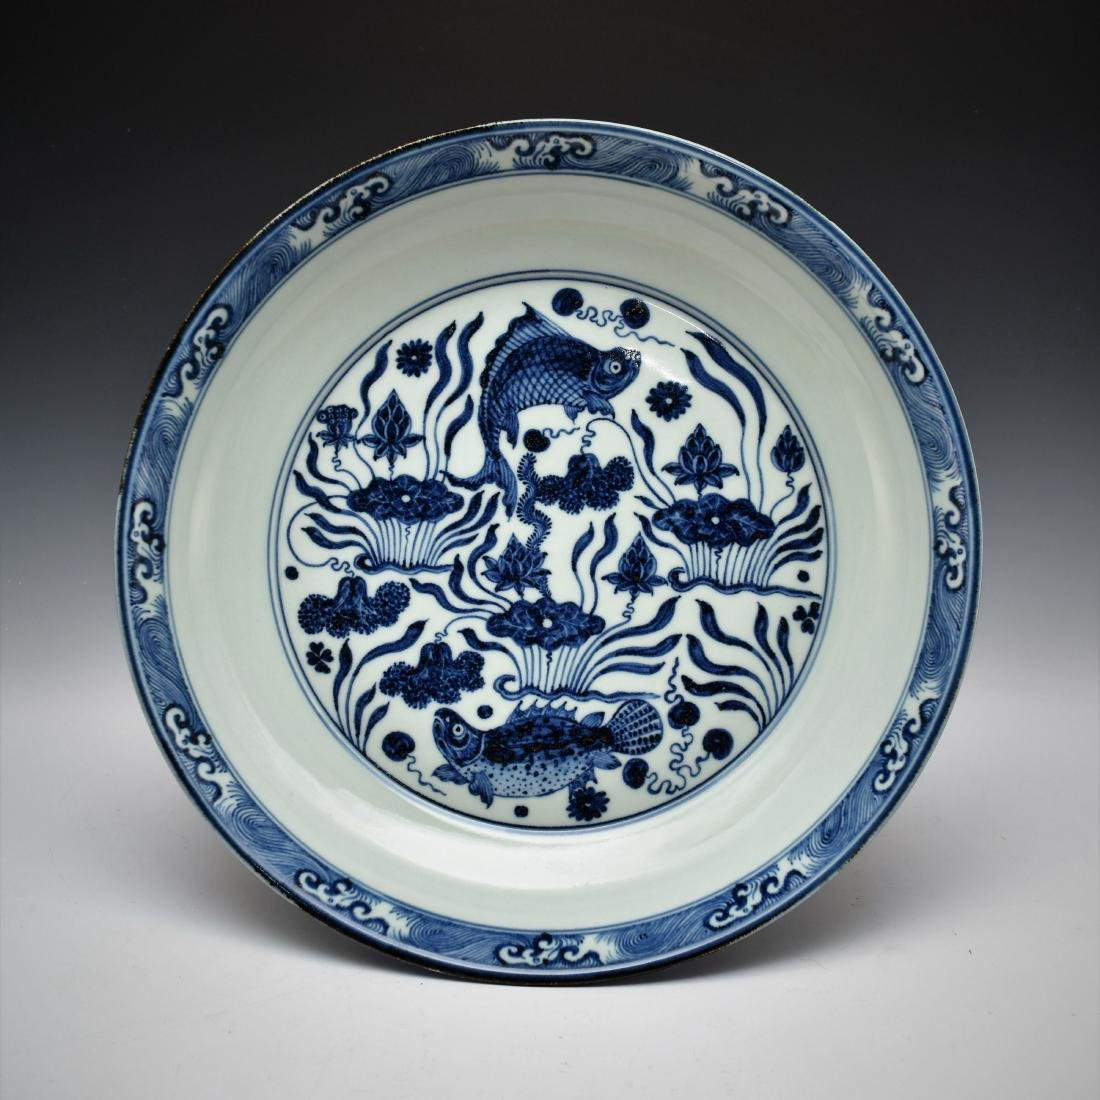 MING BLUE & WHITE FISH PORCELAIN CHARGER